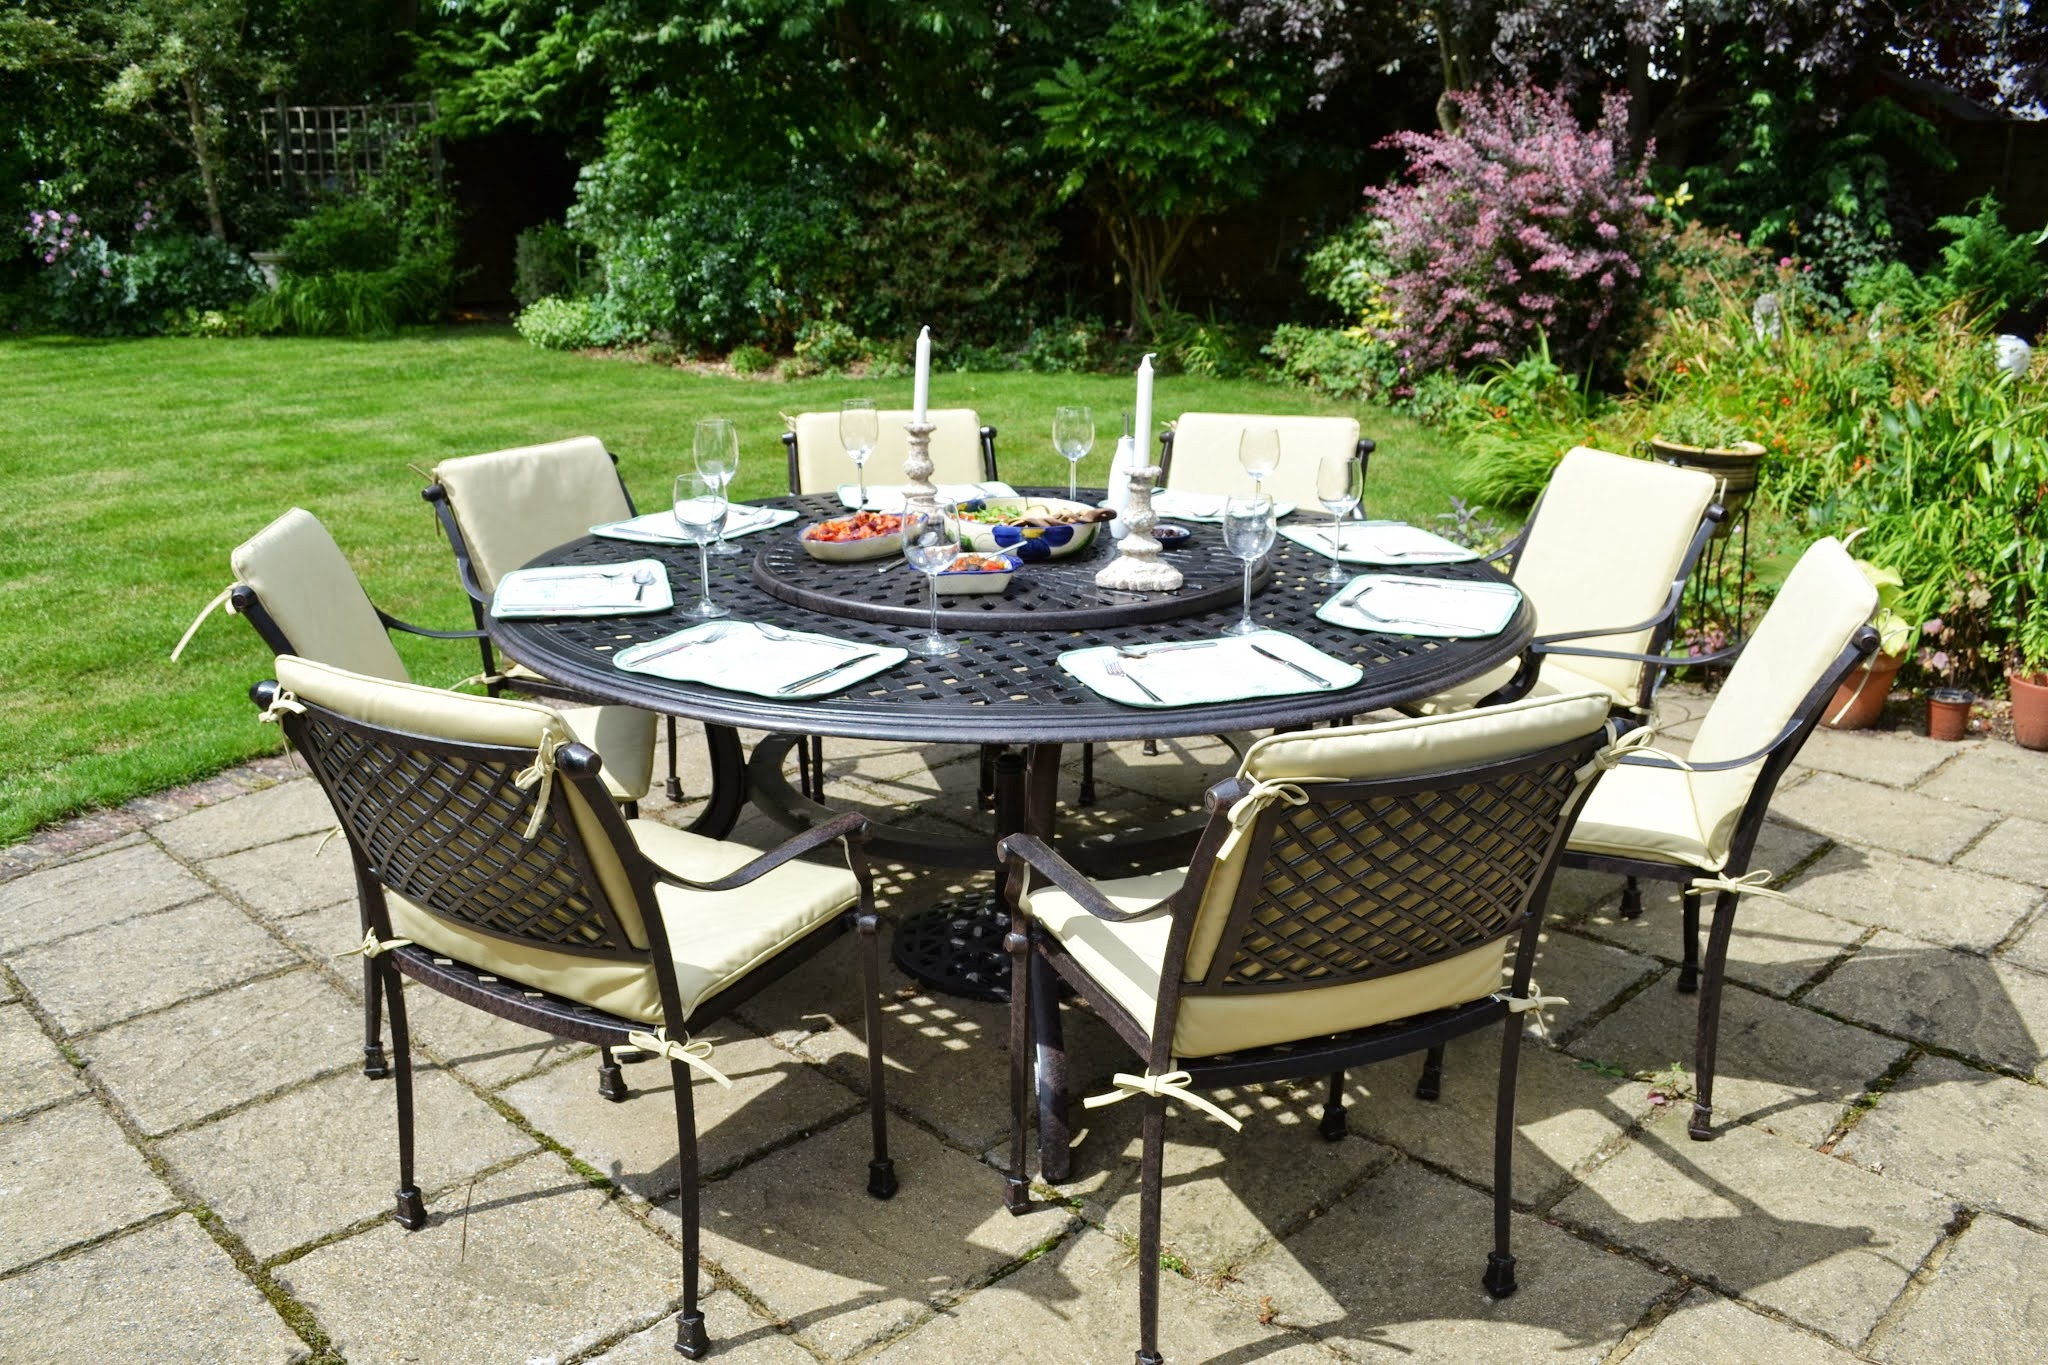 comparatif tables de jardin plateau tournant le blog ForSalon De Jardin Table Ronde